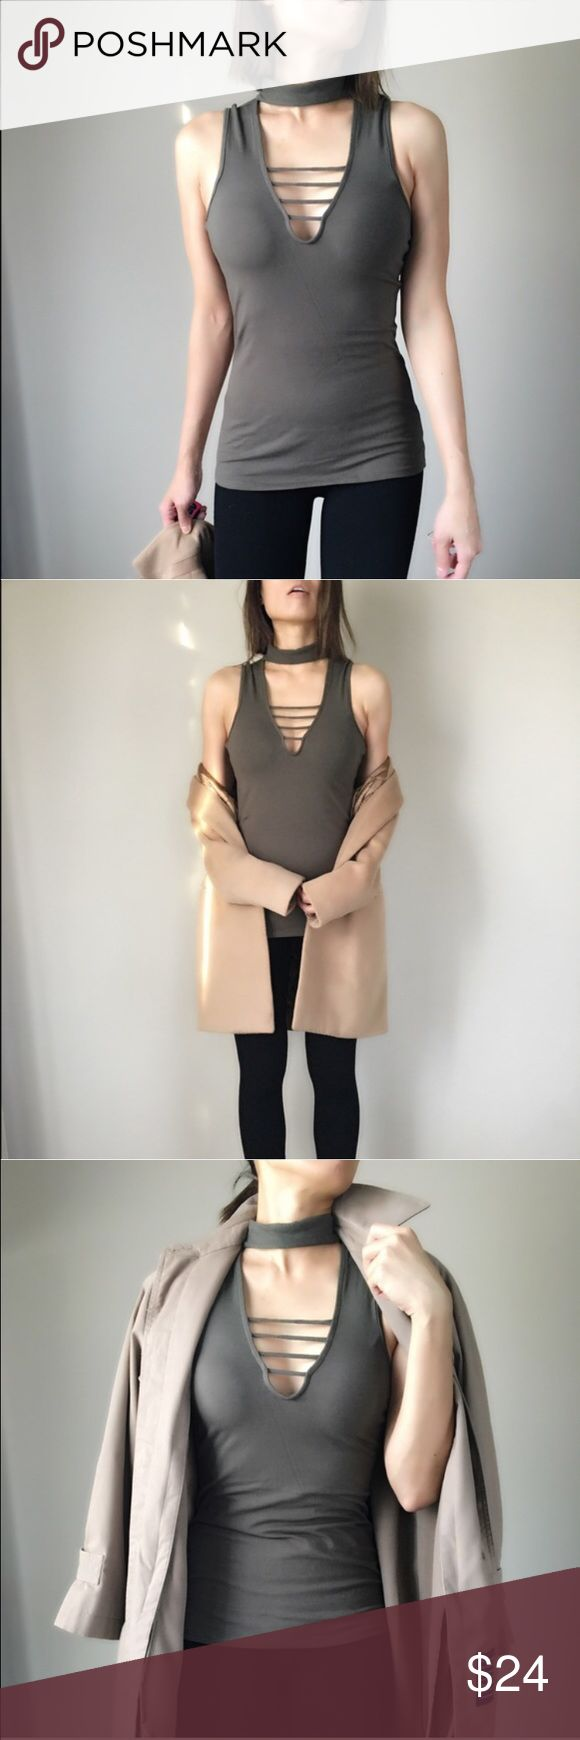 """Mock choker bodycon top Mock choker body con top. In dirty olive. 2 button back neck. Great for stylish everyday wear. Size S bust 30"""" length 26"""" w:26"""", size M bust 31"""", length 27, w:27"""". Stretchable body con material. Follow me on  INSTAGRAM: @chic_bomb  and FACEBOOK: @thechicbomb CHICBOMB Tops"""